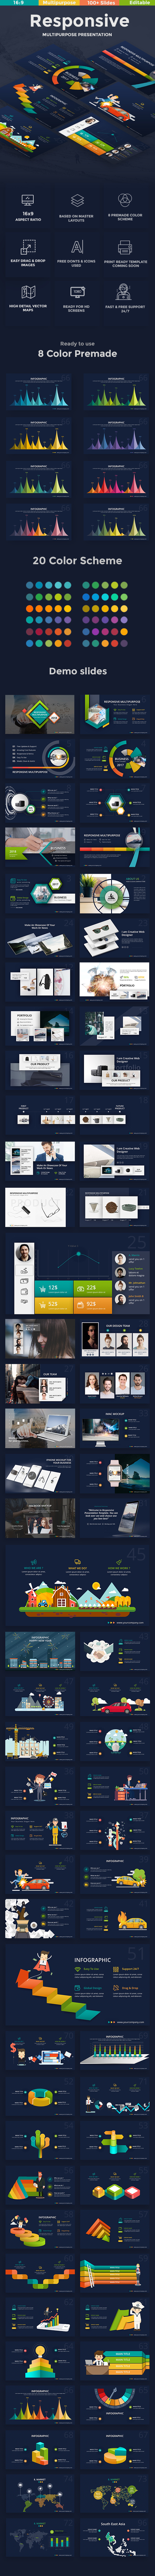 Responsive Multipurpose Keynote Template - Business Keynote Templates